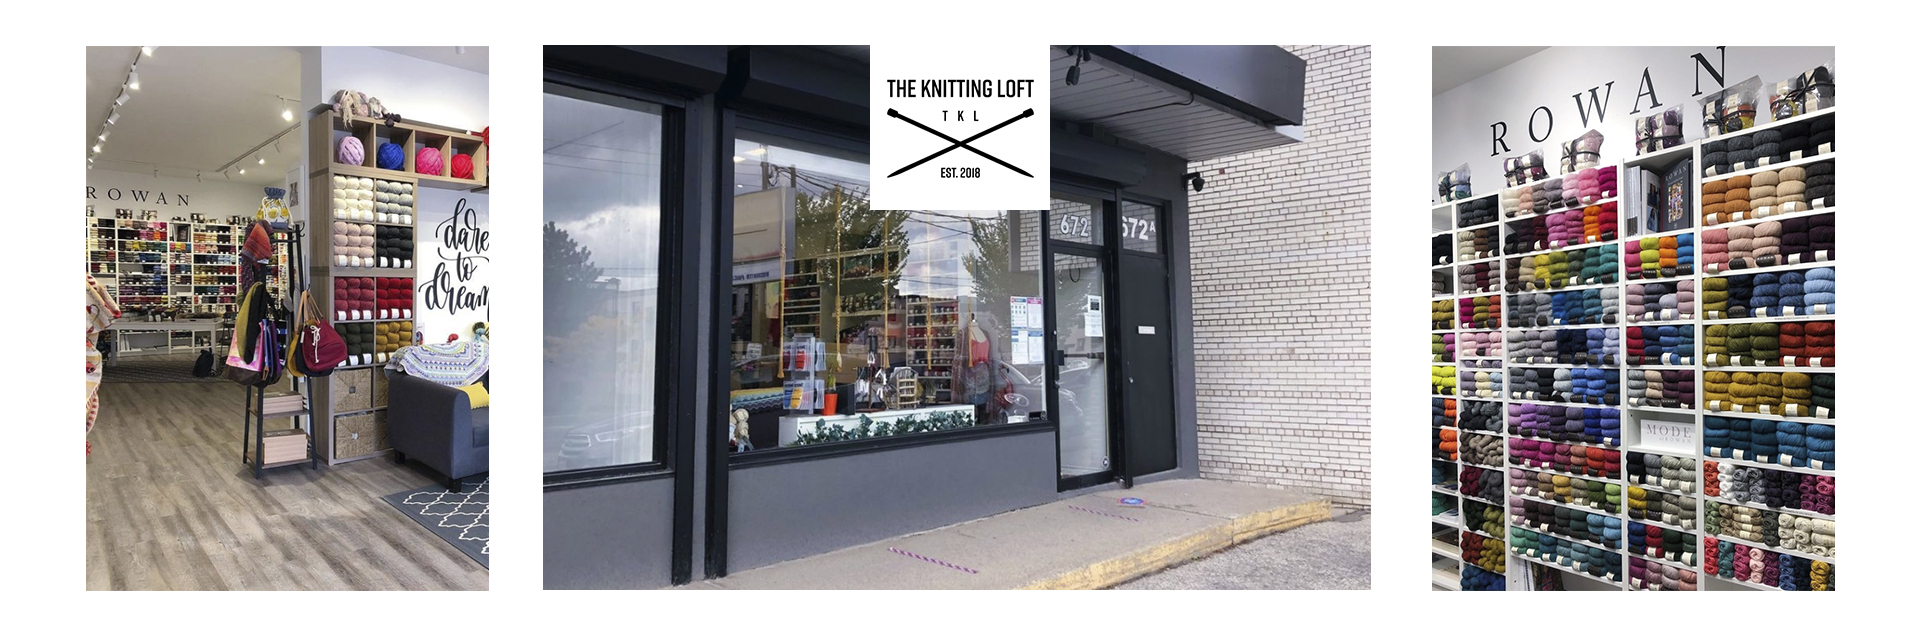 Focused on natural fibre, rustic, and indie dyed yarn, The Knitting Loft is a local yarn shop based in Toronto, which has quickly become known for its modern aesthetic, differentiated yarn selection, and community experience. A must see yarn destination for anyone who's visiting the city!